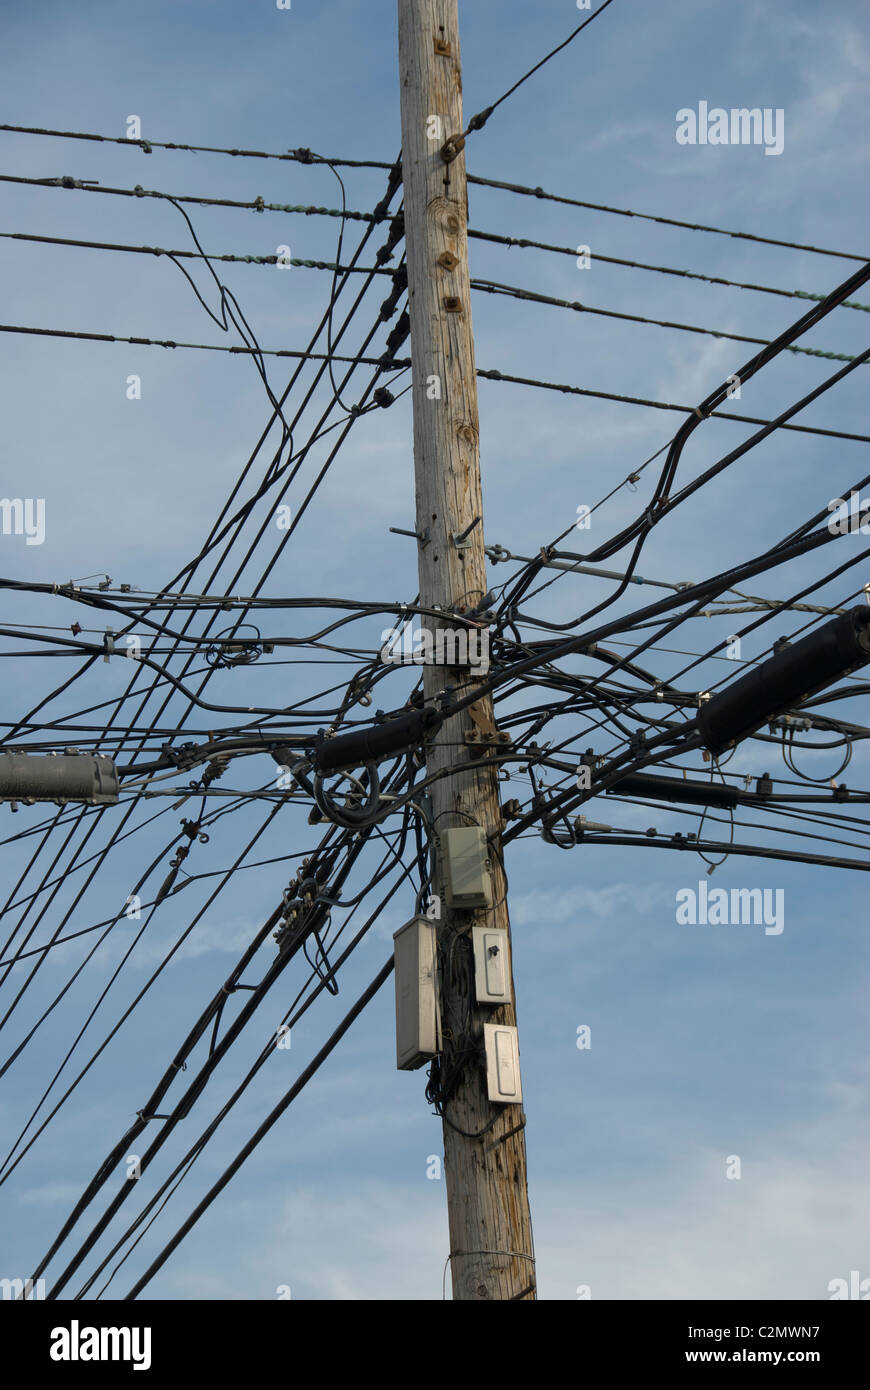 Overhead Electric Cable : Overhead power lines messy bundles of electrical cables